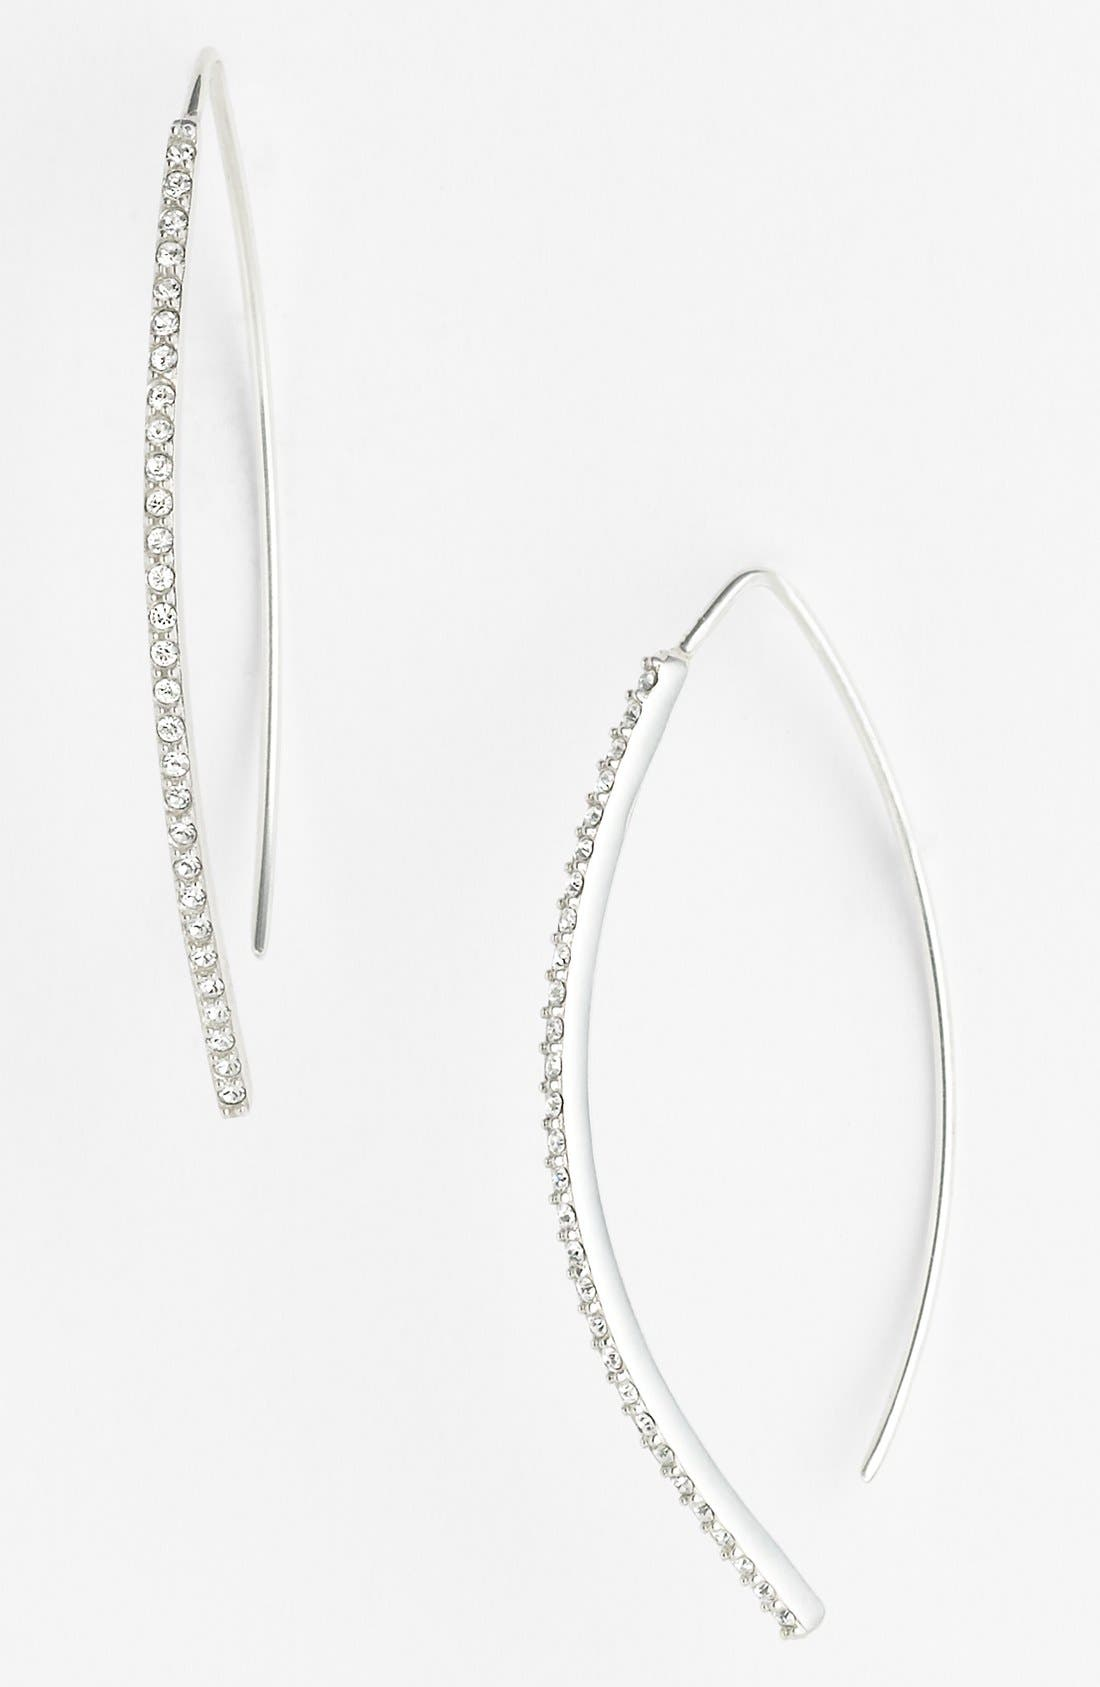 Main Image - Judith Jack Linear Earrings